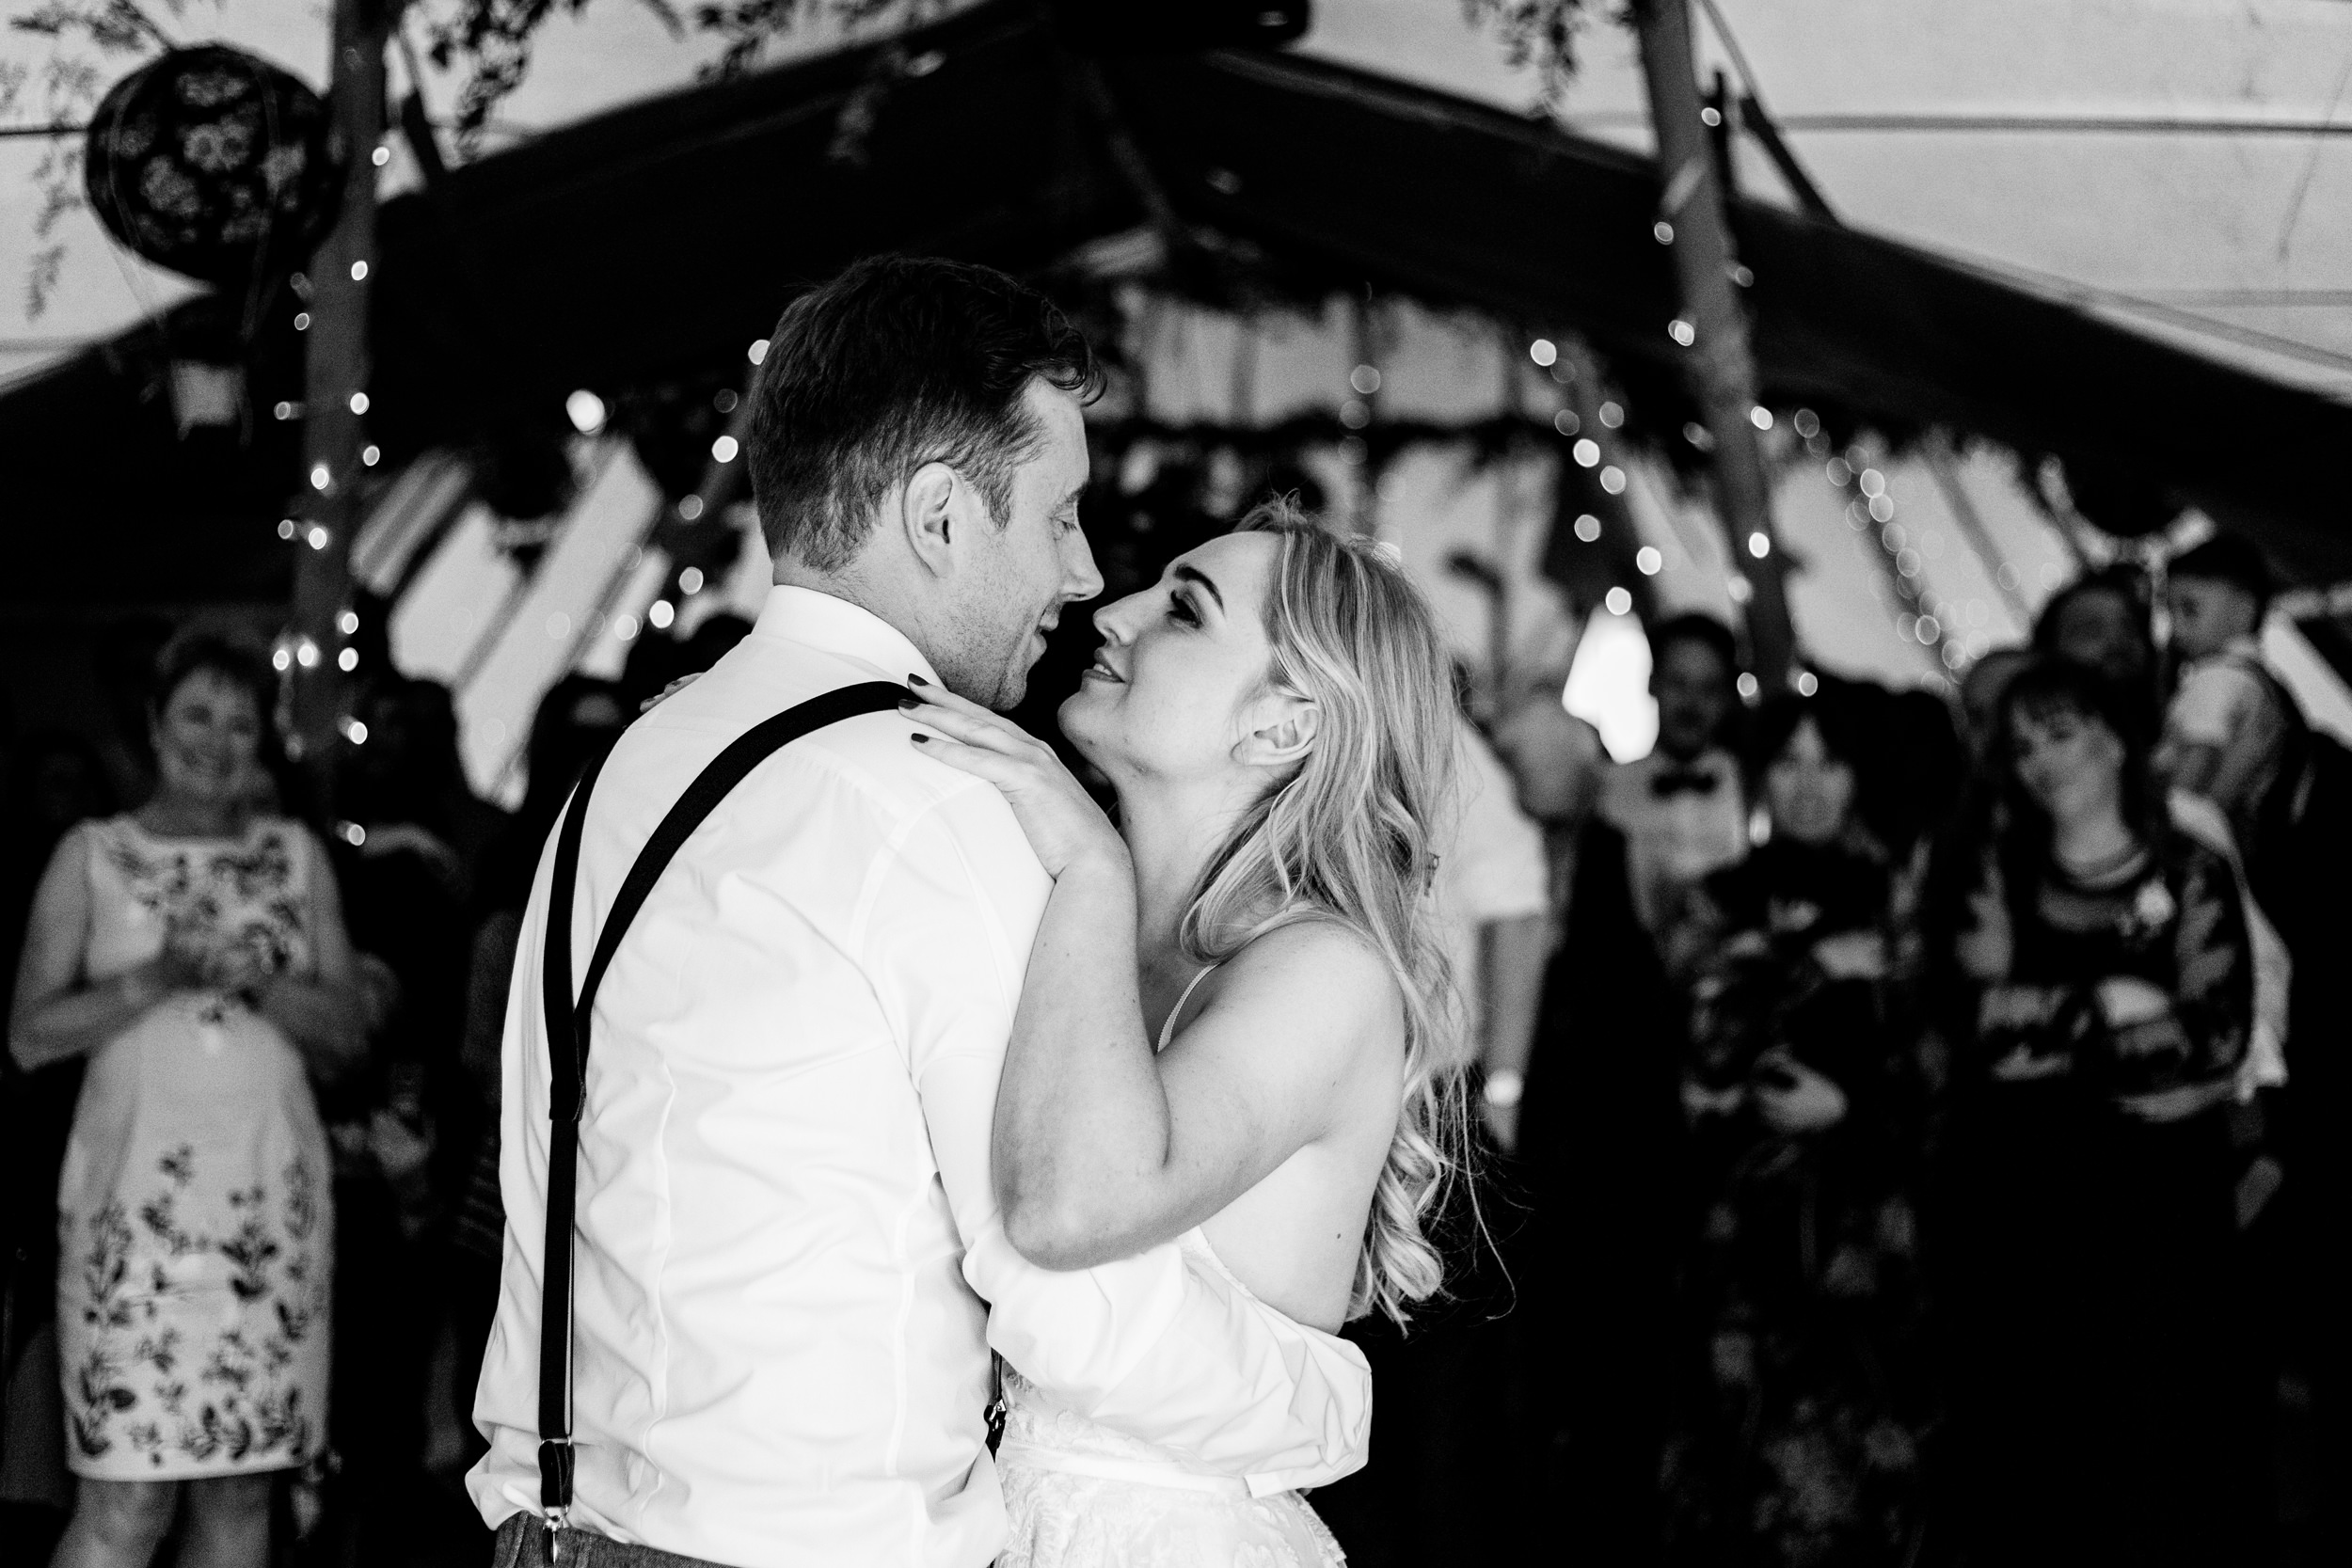 married couples first dance. wildwood and eden wedding photography by emma and rich.